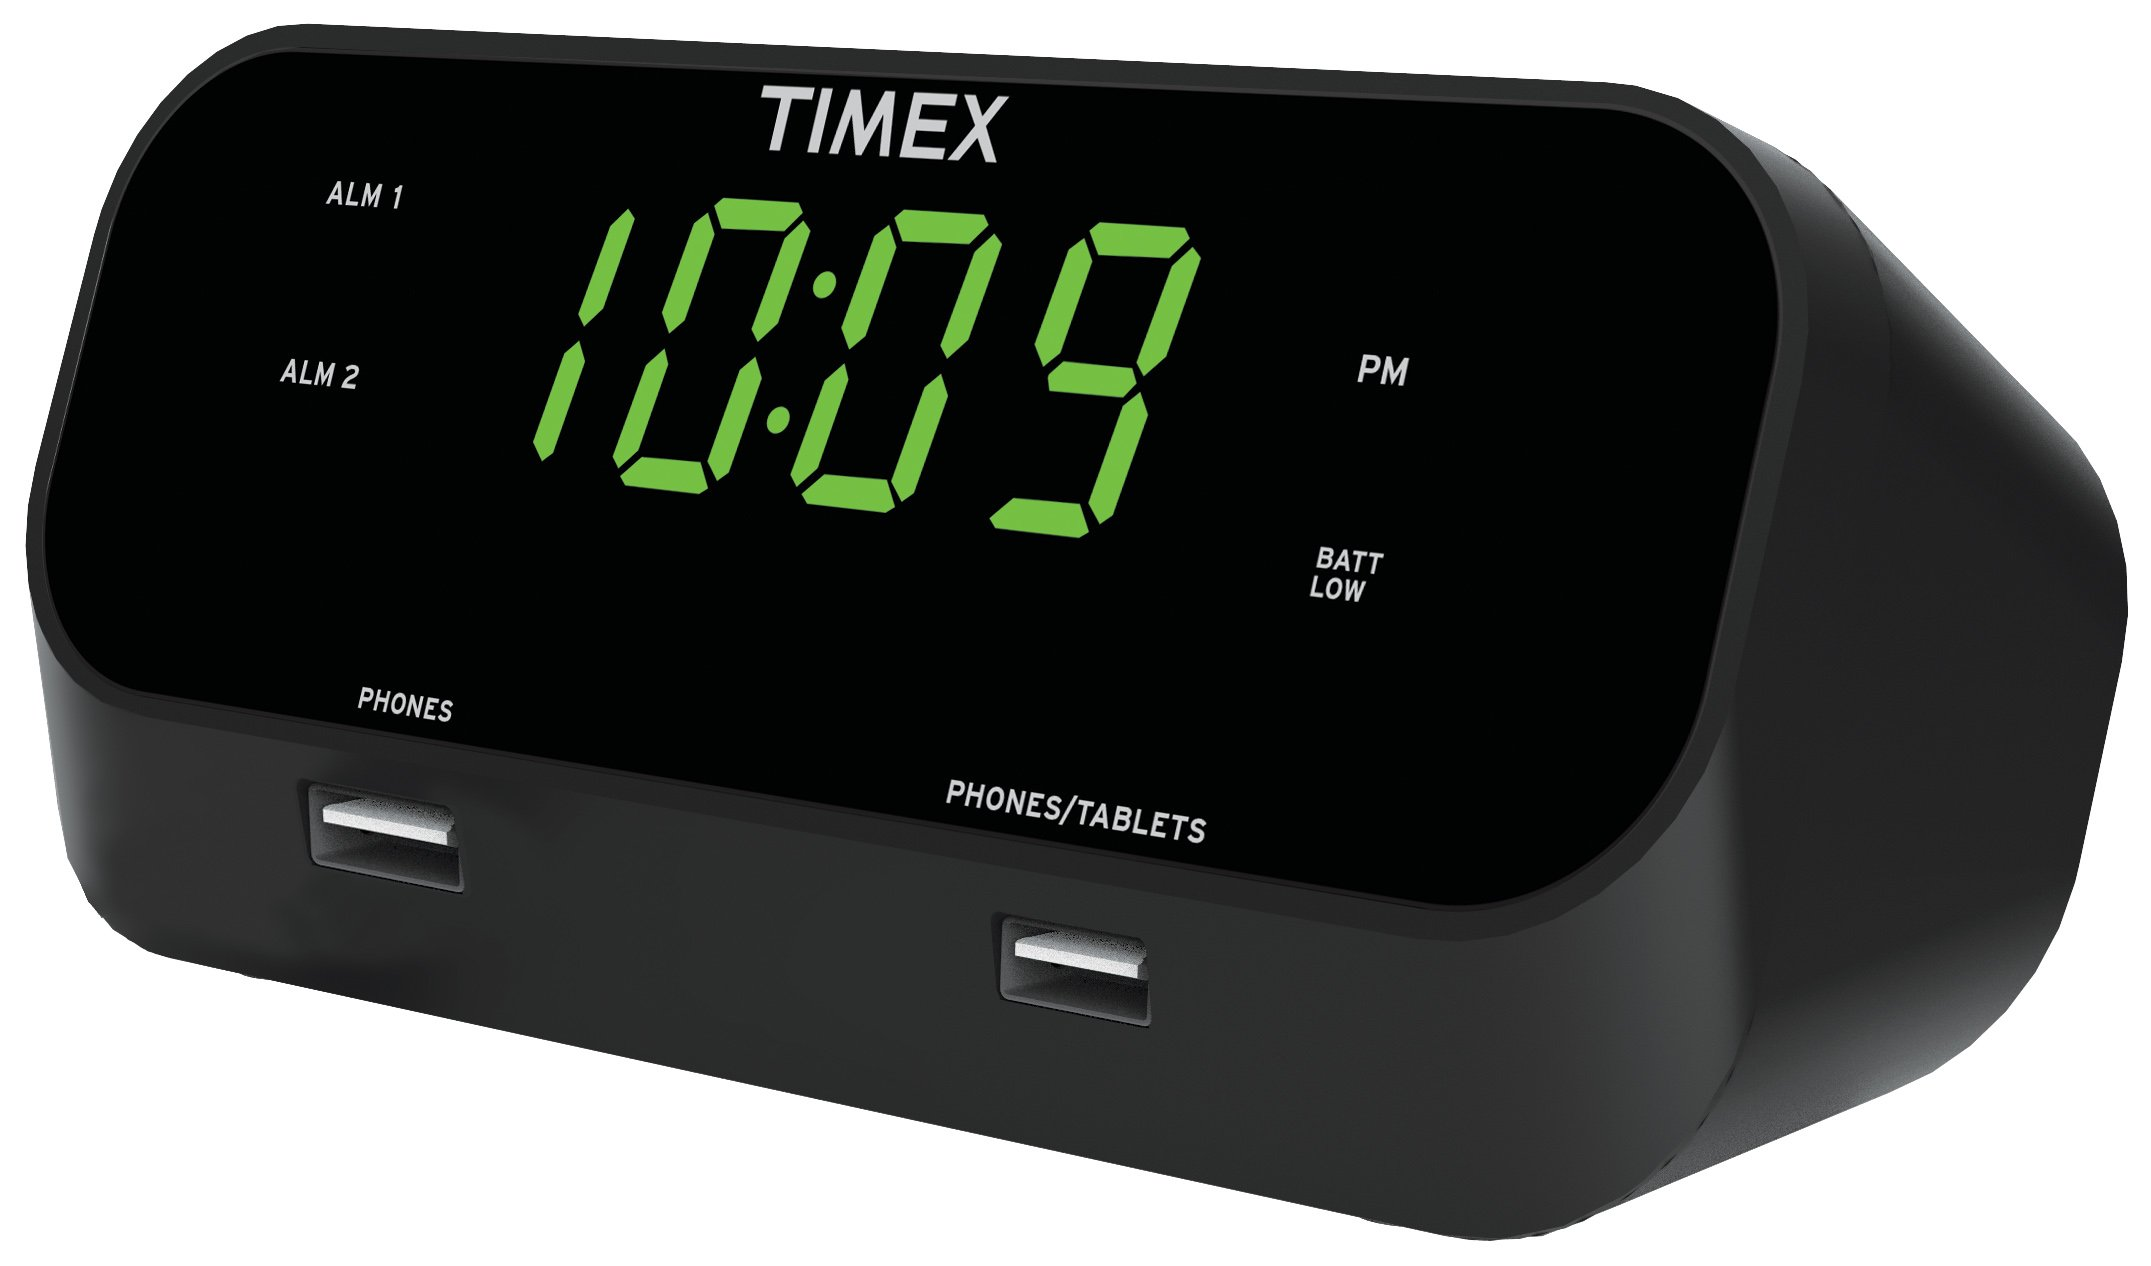 Timex T129B RediSet Dual Alarm Clock with Dual USB Charging and Extreme Battery Backup - Black by Timex